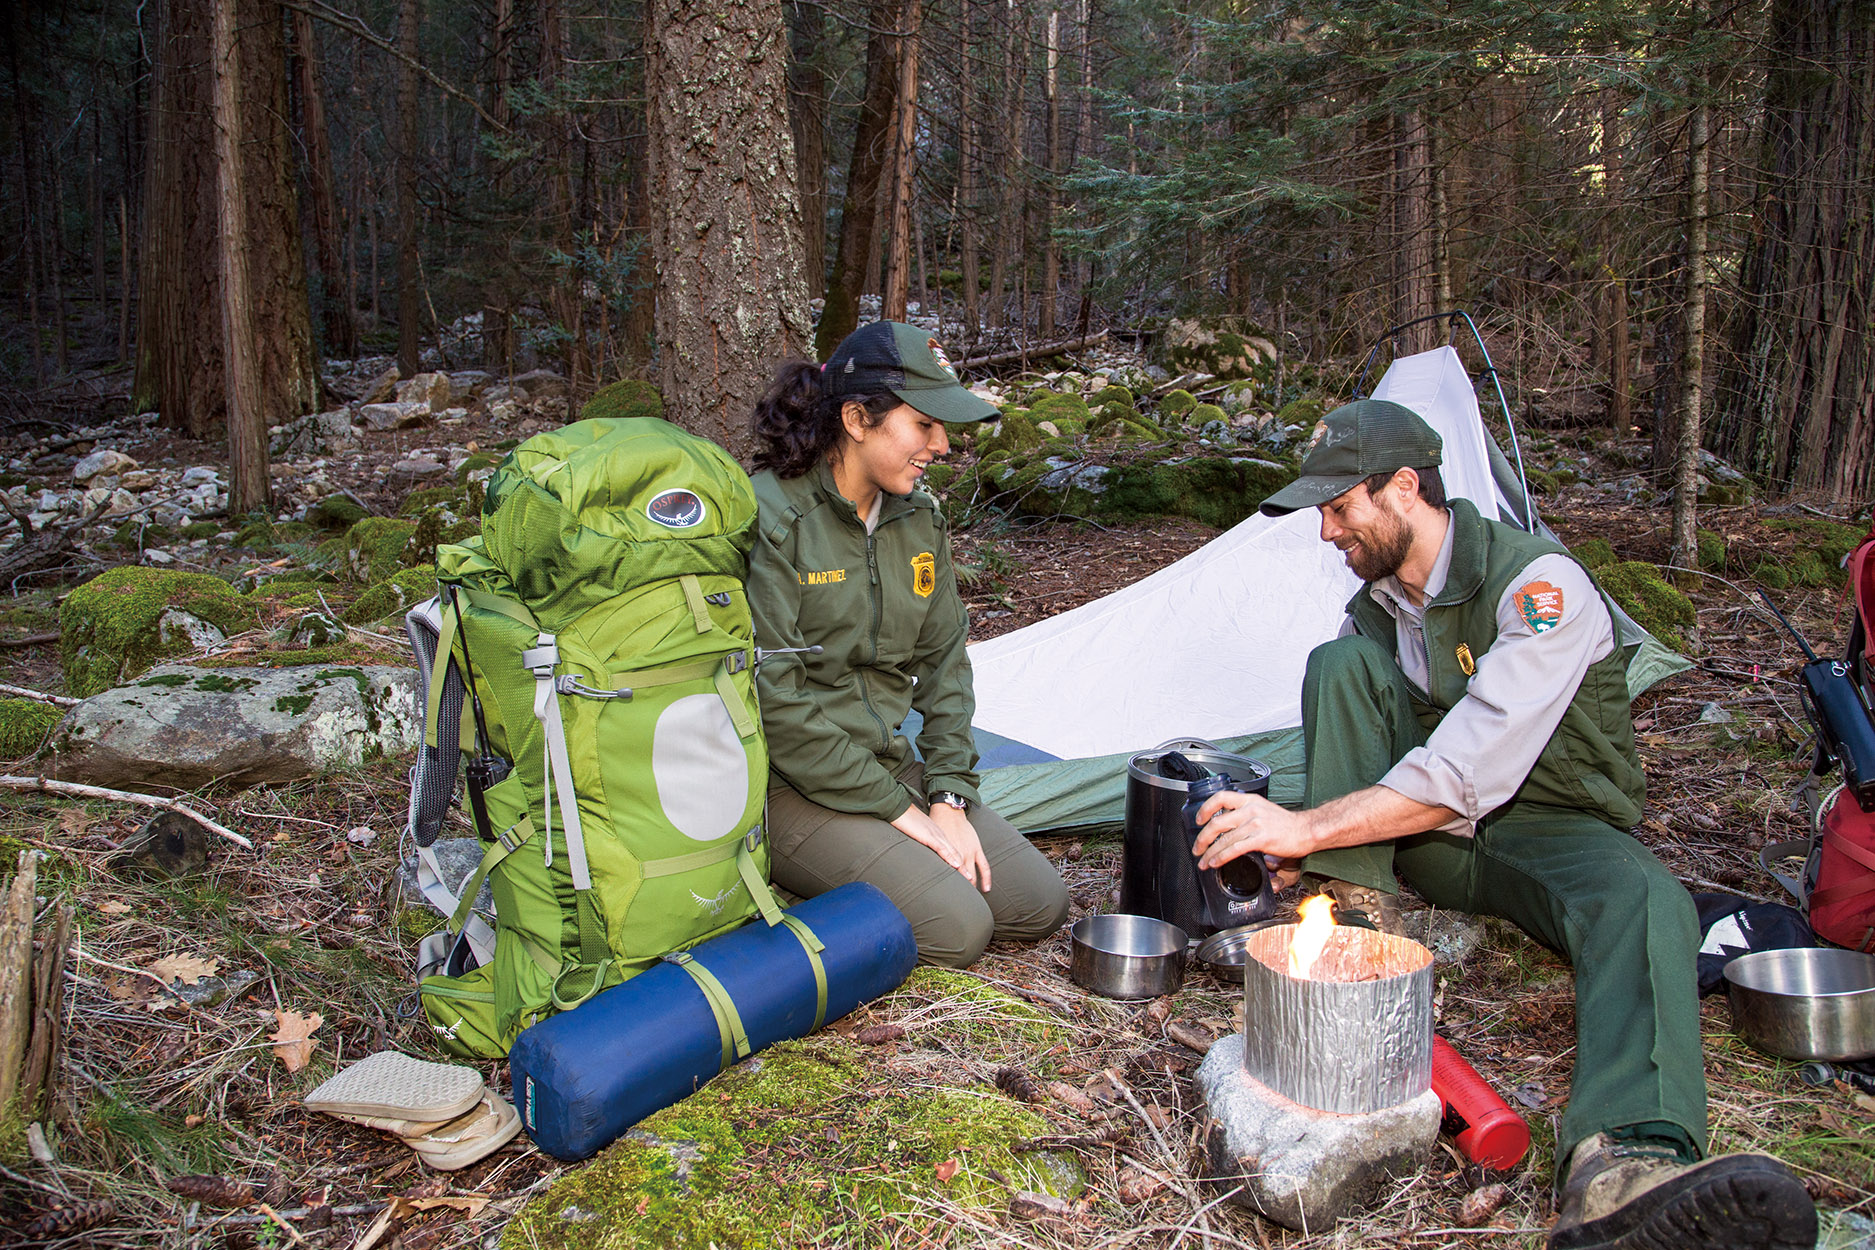 "<p>National Park Service rangers Africia Martinez <span style=""line-height: 1.66667em;"">(left) </span><span style=""line-height: 1.66667em;"">and </span><span style=""line-height: 1.66667em;""> Jesse Chakrin </span><span style=""line-height: 1.66667em;"">(right) make dinner. </span></p>"